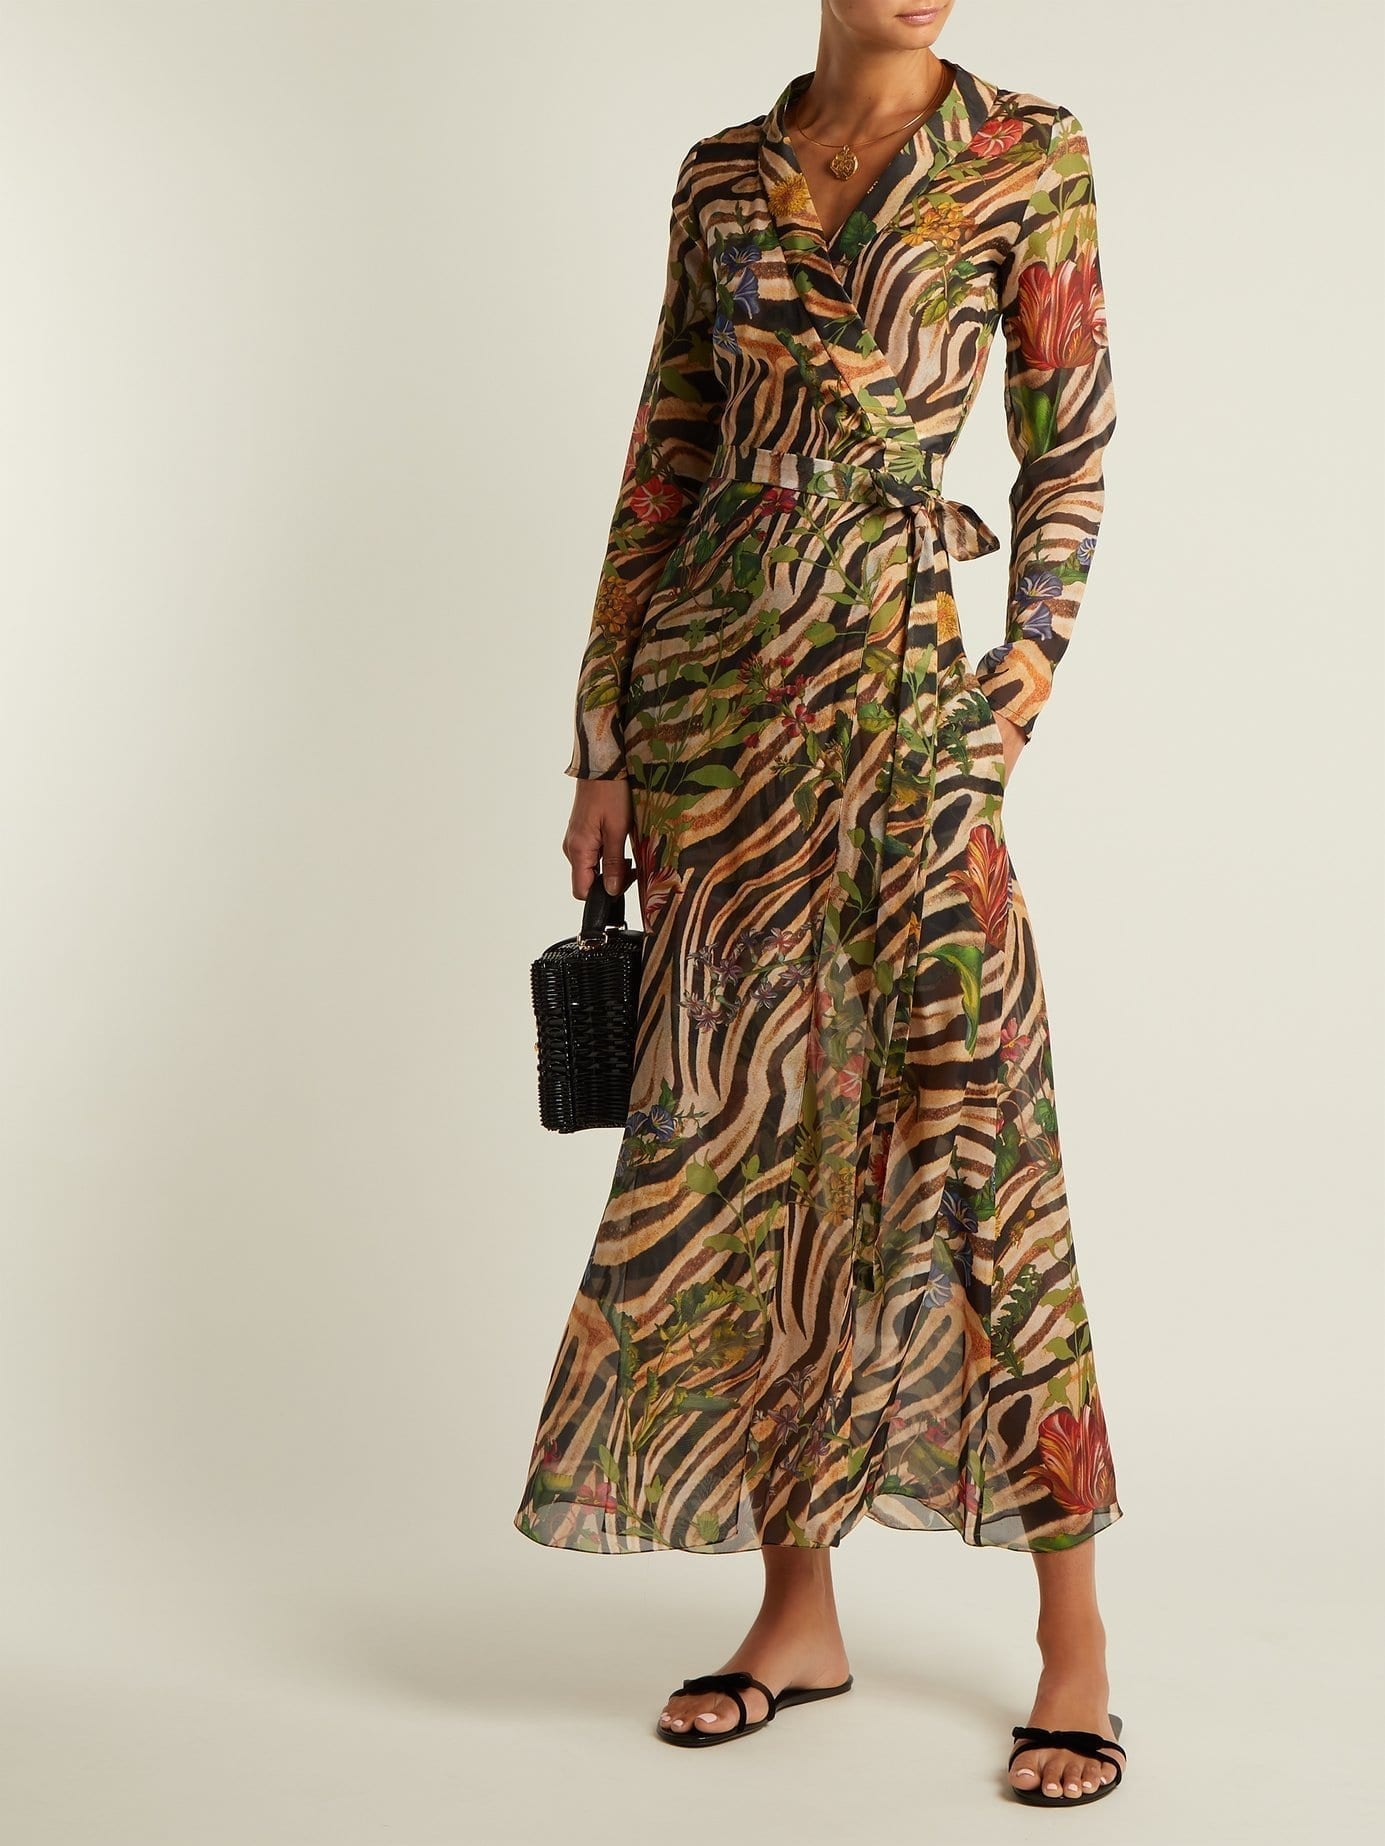 ADRIANA IGLESIAS Beverly Zebra Print Silk Chiffon Brown Dress